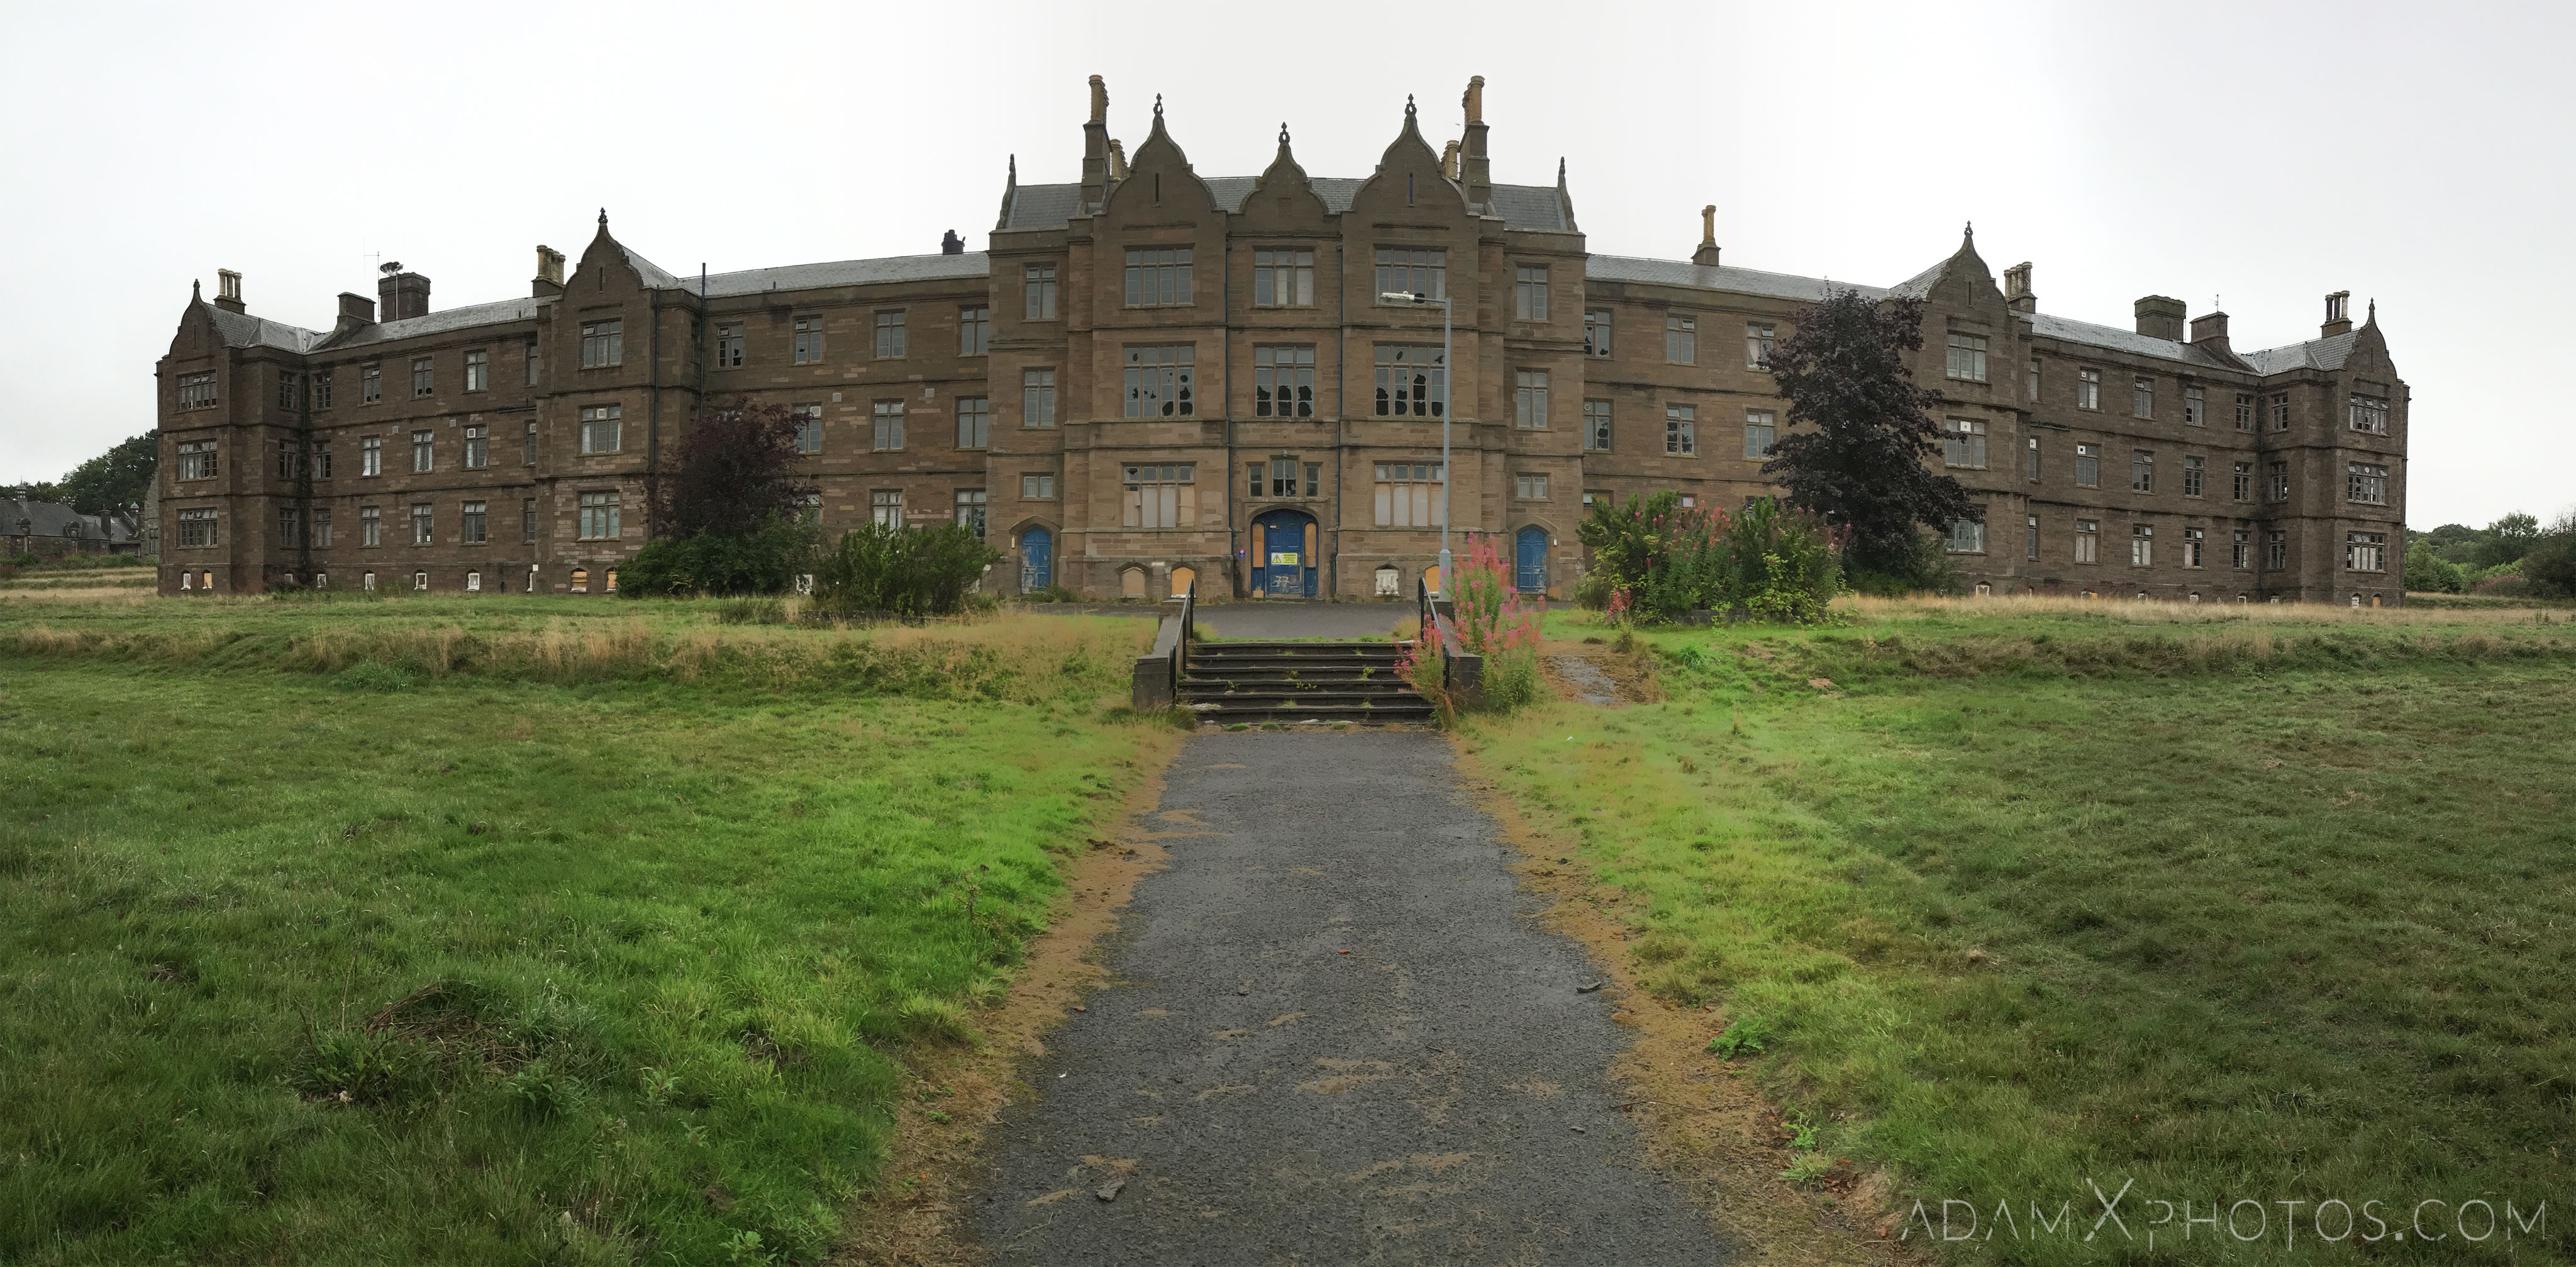 Explore 229 Sunnyside Royal Hospital Montrose Scotland September 2018 Adam X